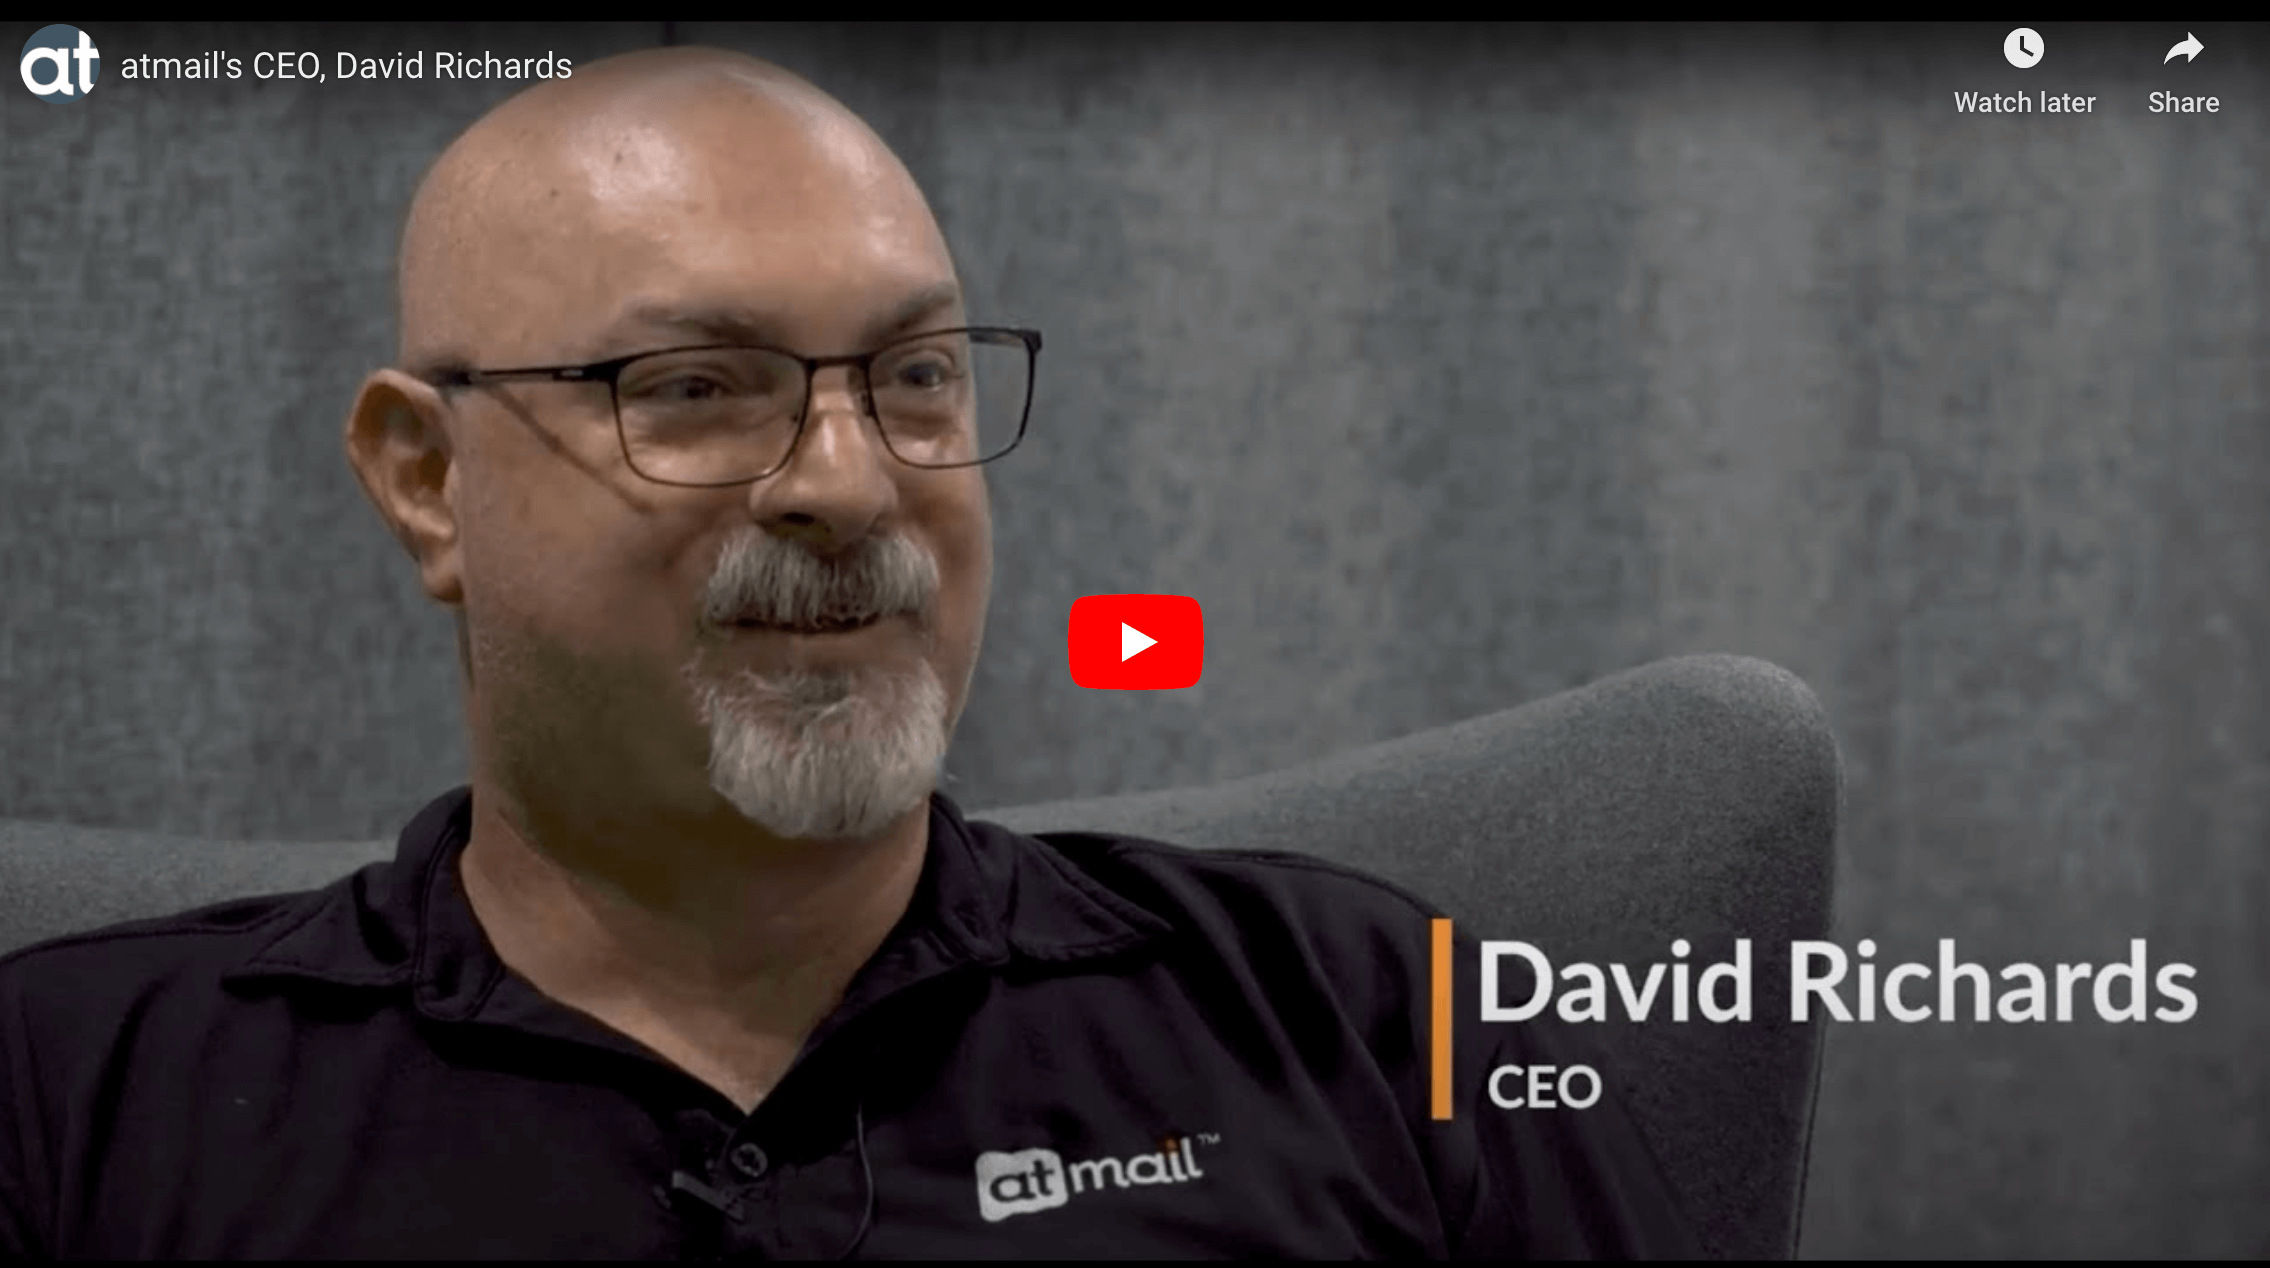 David Richards atmail CEO - atmail email hosting experts - telco email hosting - dave richards